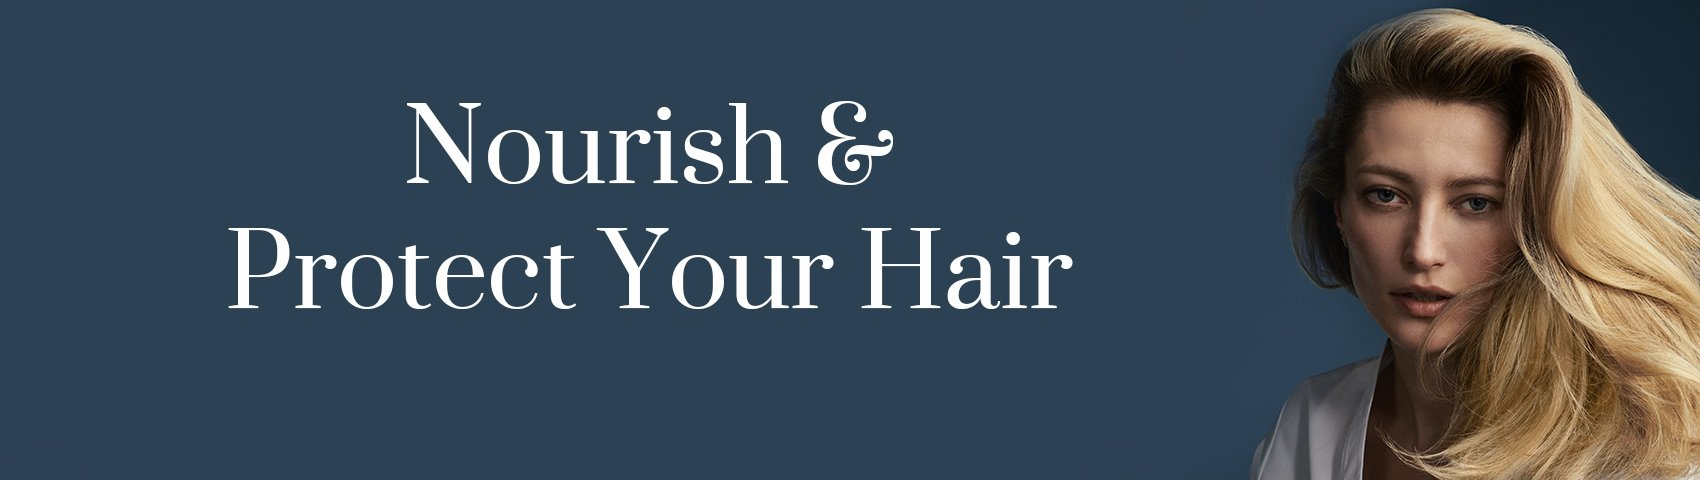 Nourish Protect Your Hair BANNER